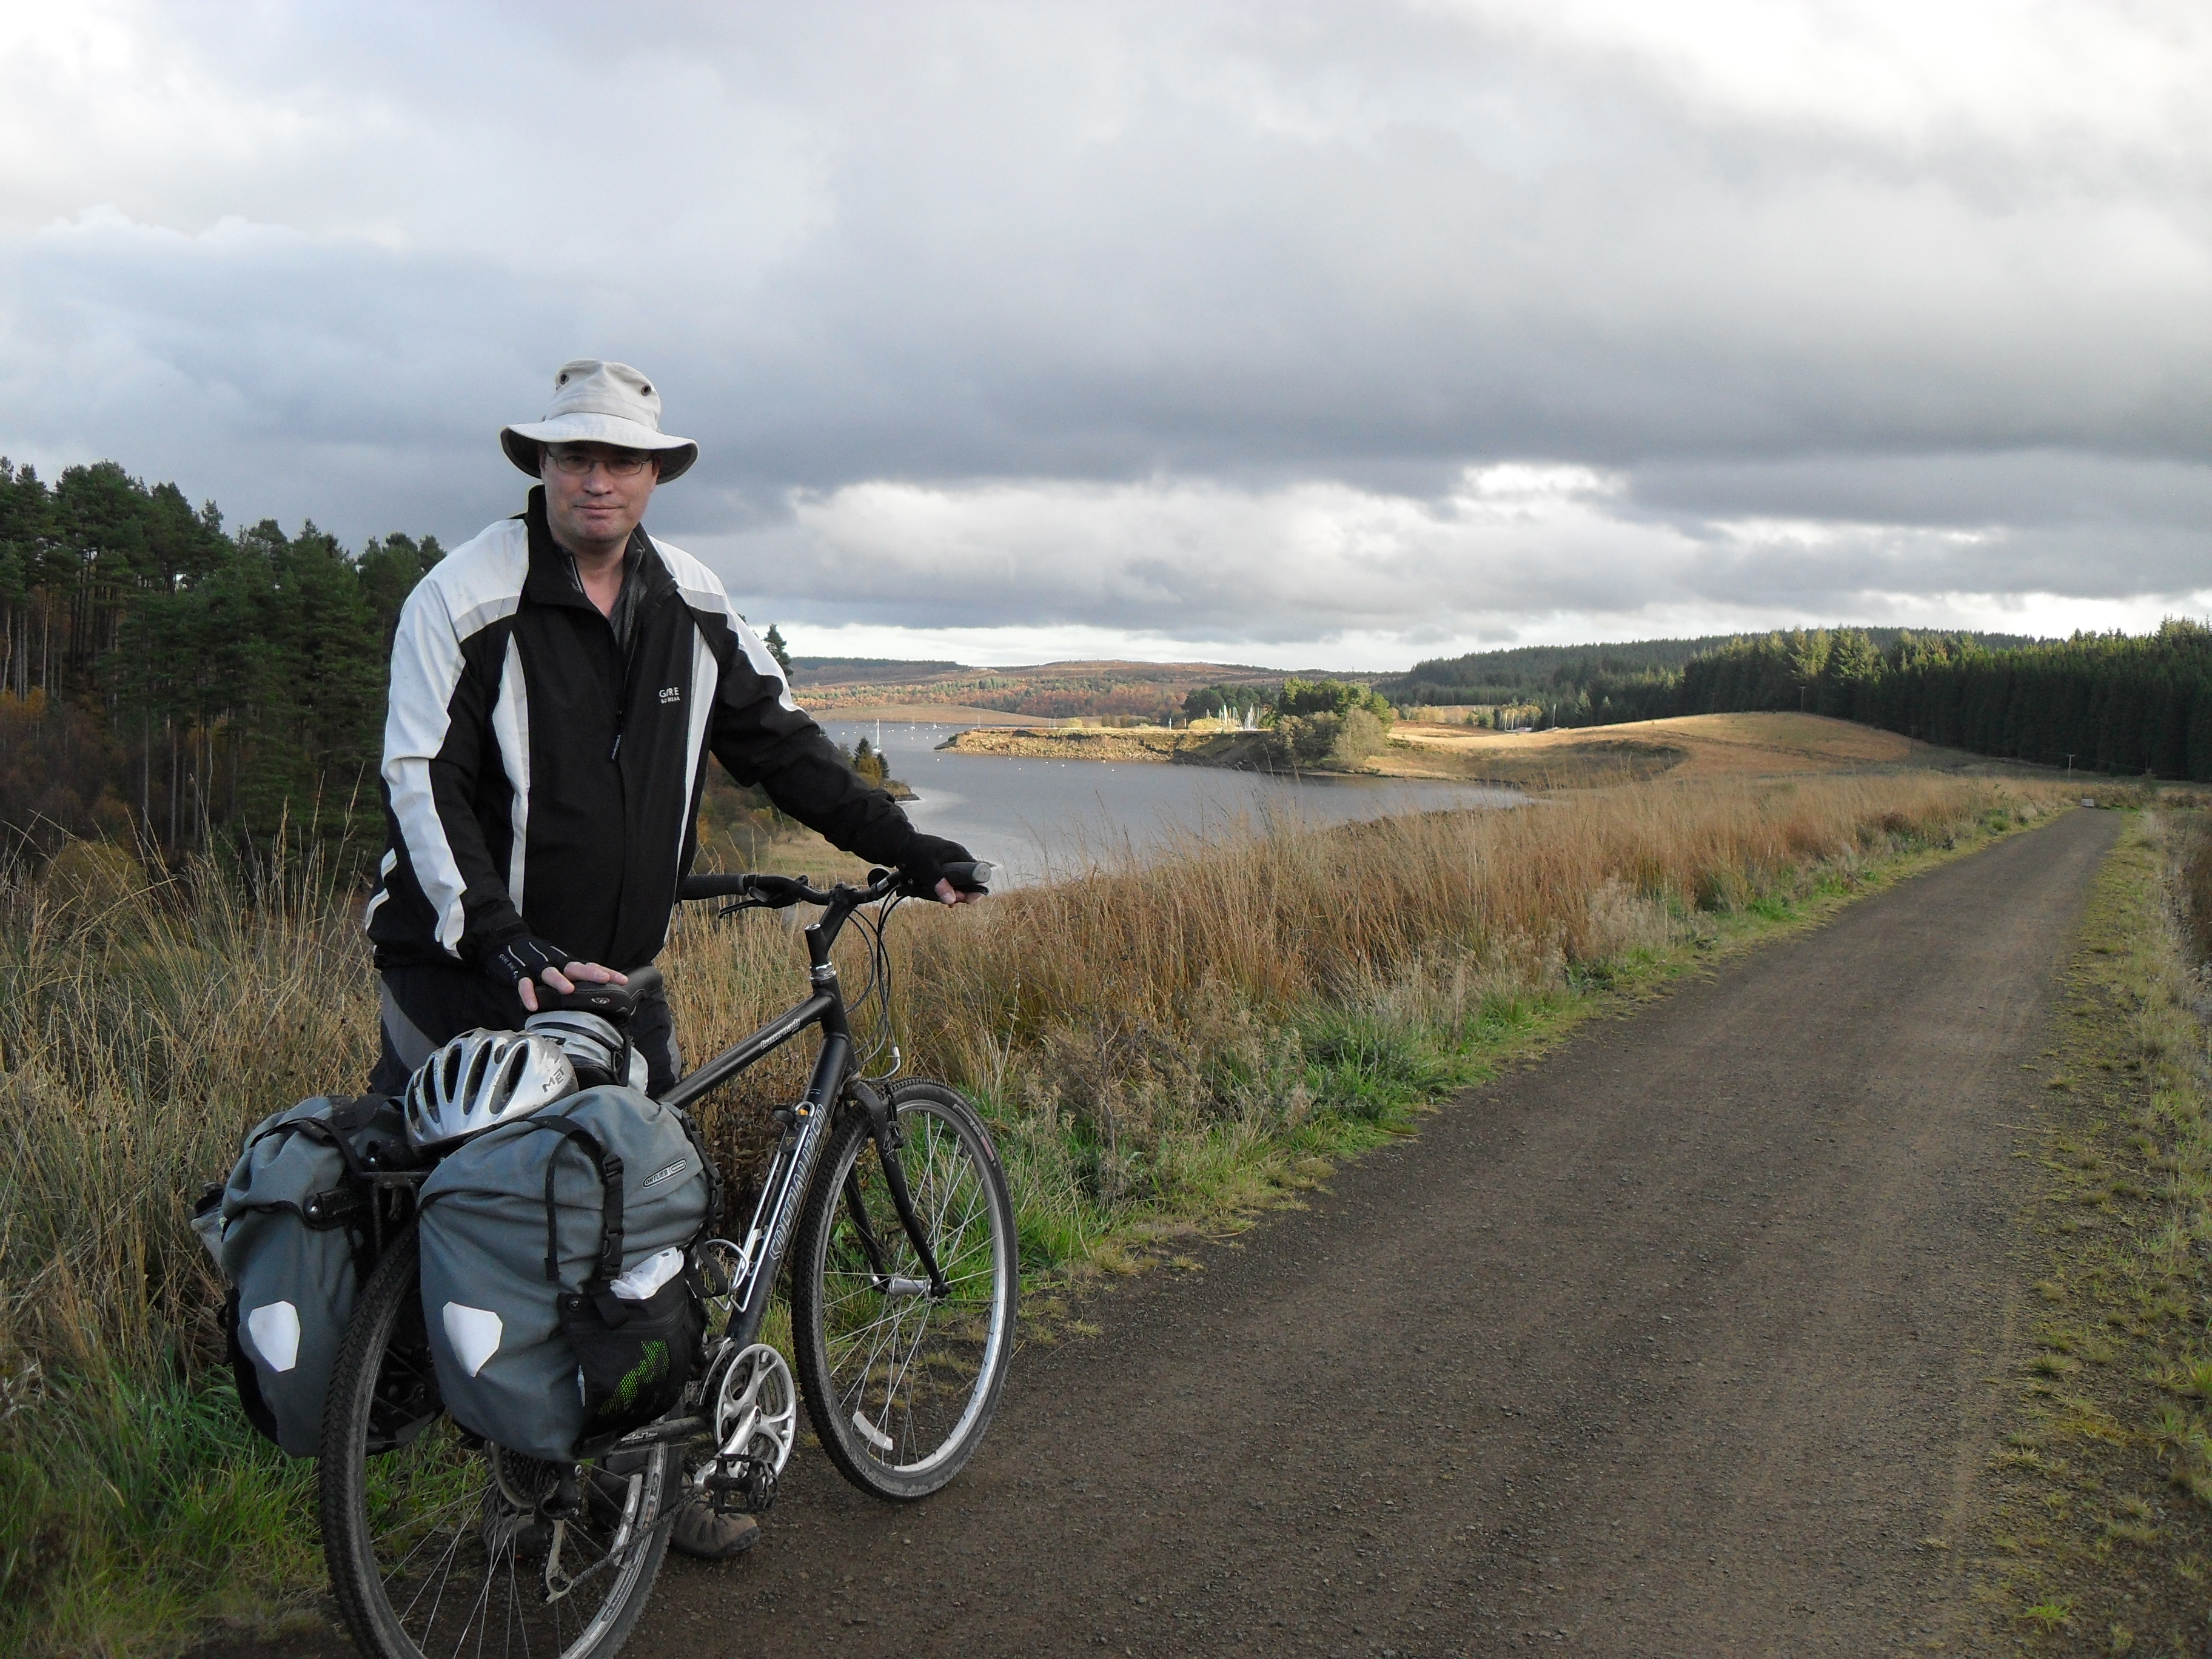 Northumberland National Park was established 6 April 1956 and covers 405 square miles but it really a park of two halves. Our family explored much of the North East Cheviots by cycle